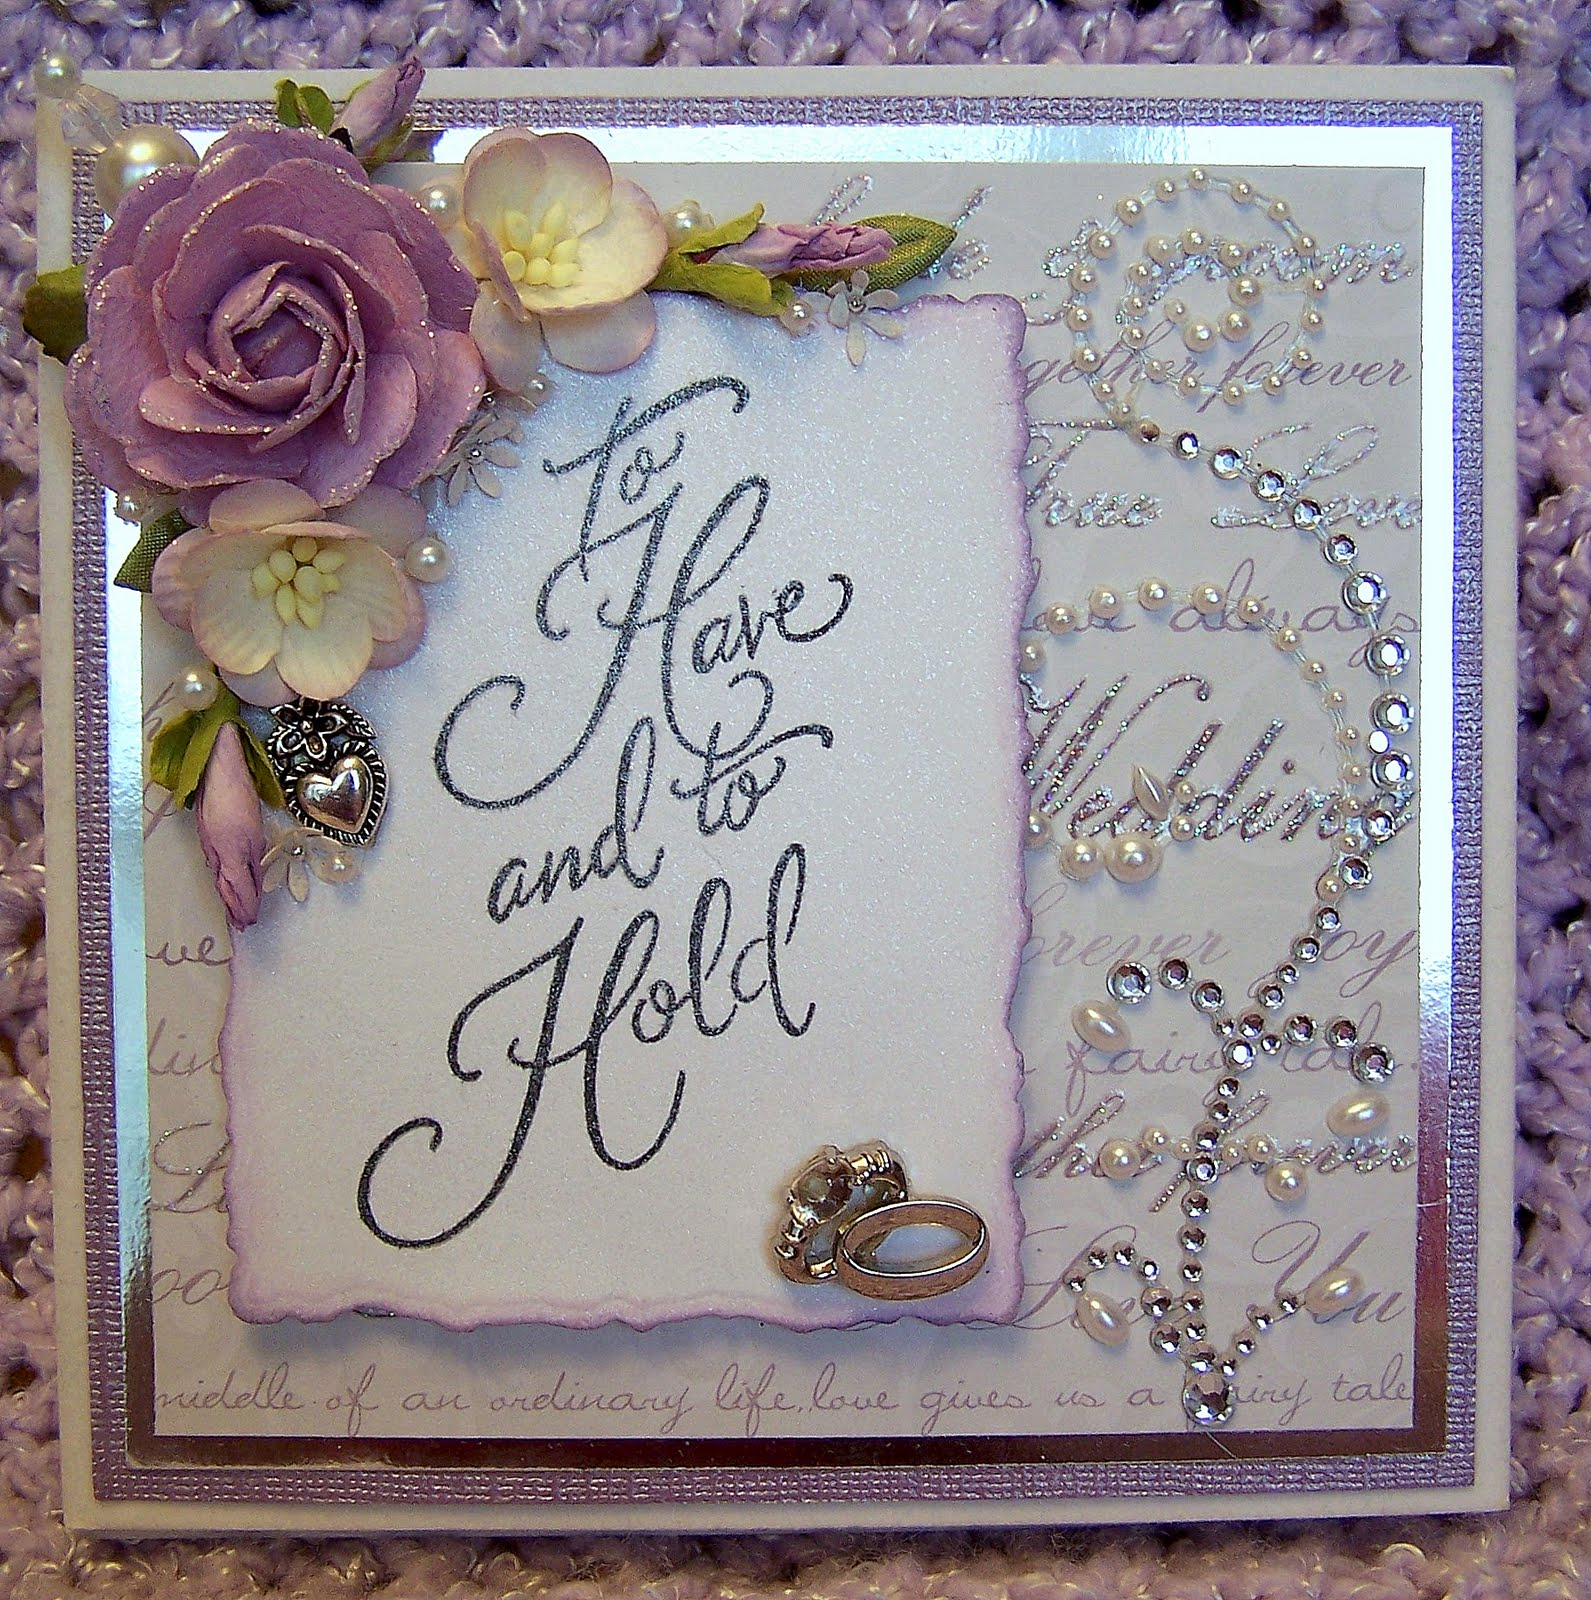 Precy39;s blog: handmade wedding card,